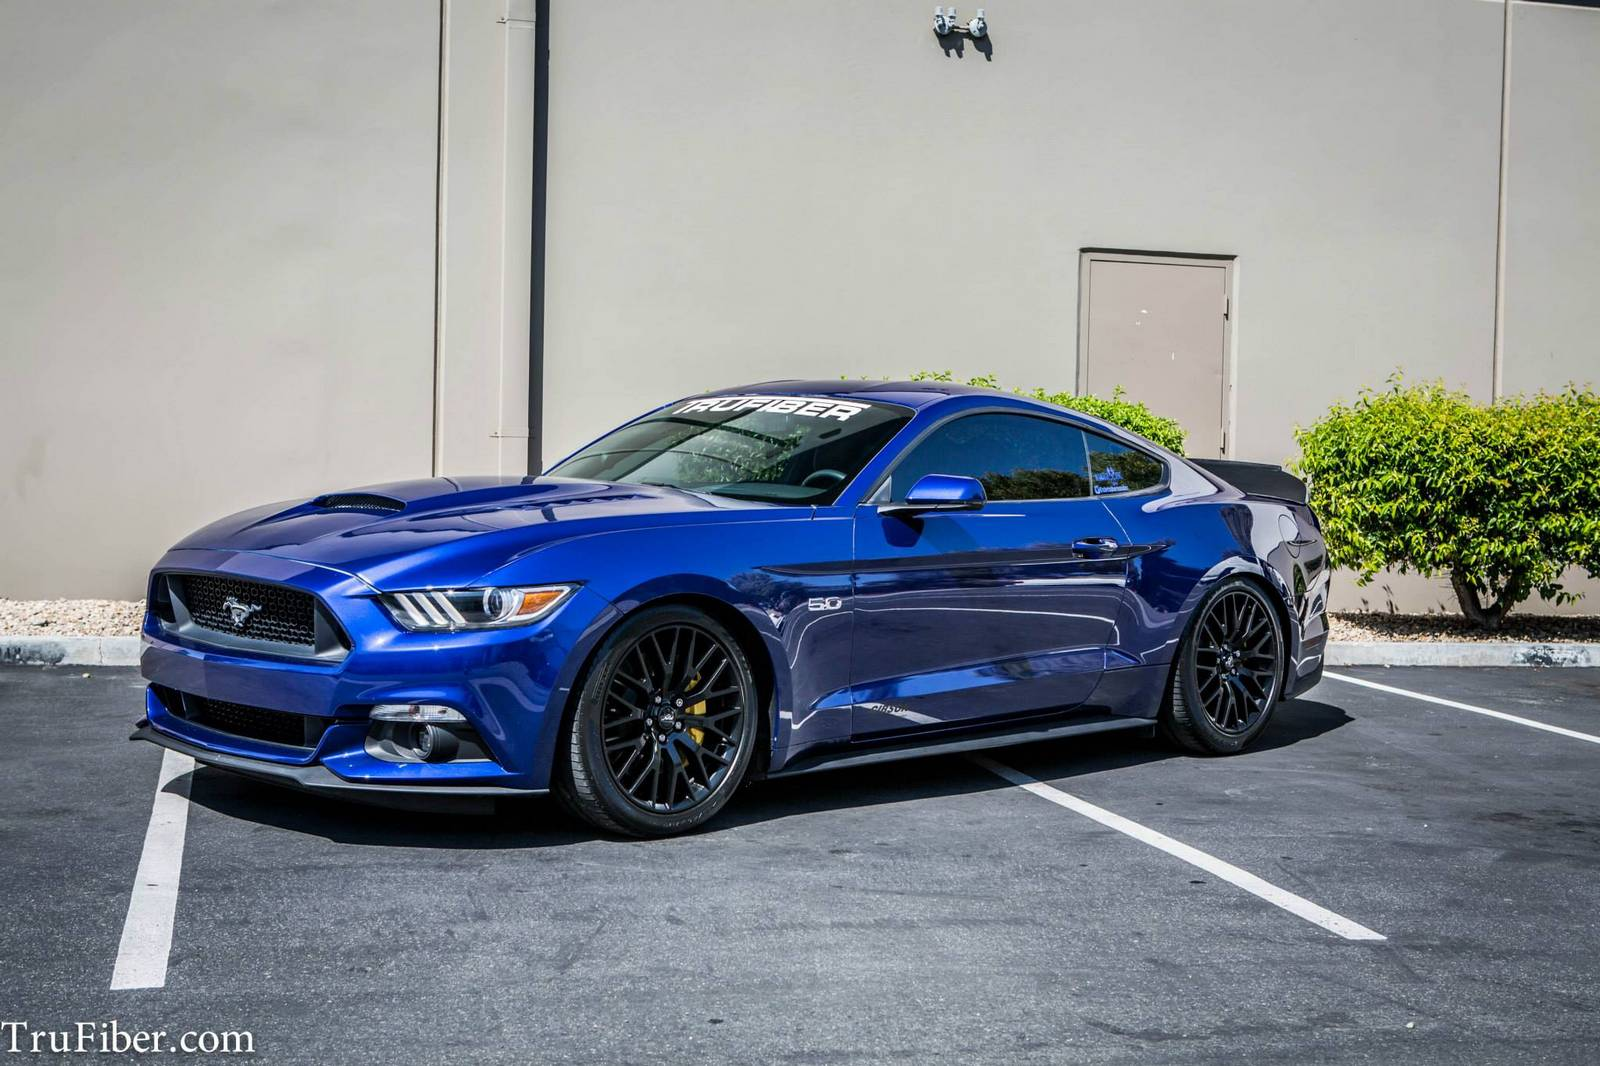 2014 Ford Mustang Interior 2014 Ford Mustang Concept | Apps ...